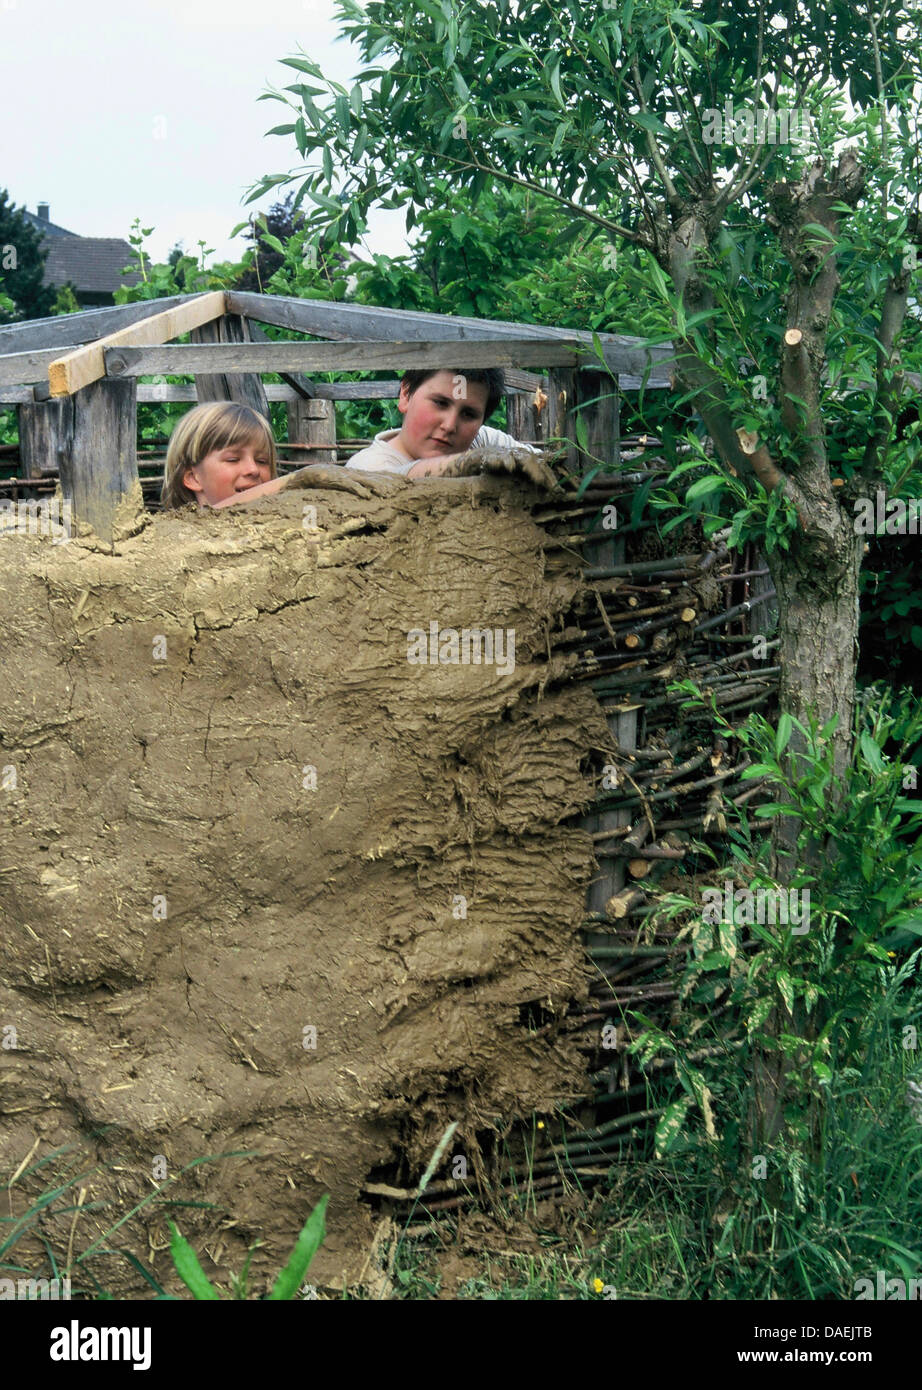 Two Boys Building A Clay Hut In The Garden, Germany